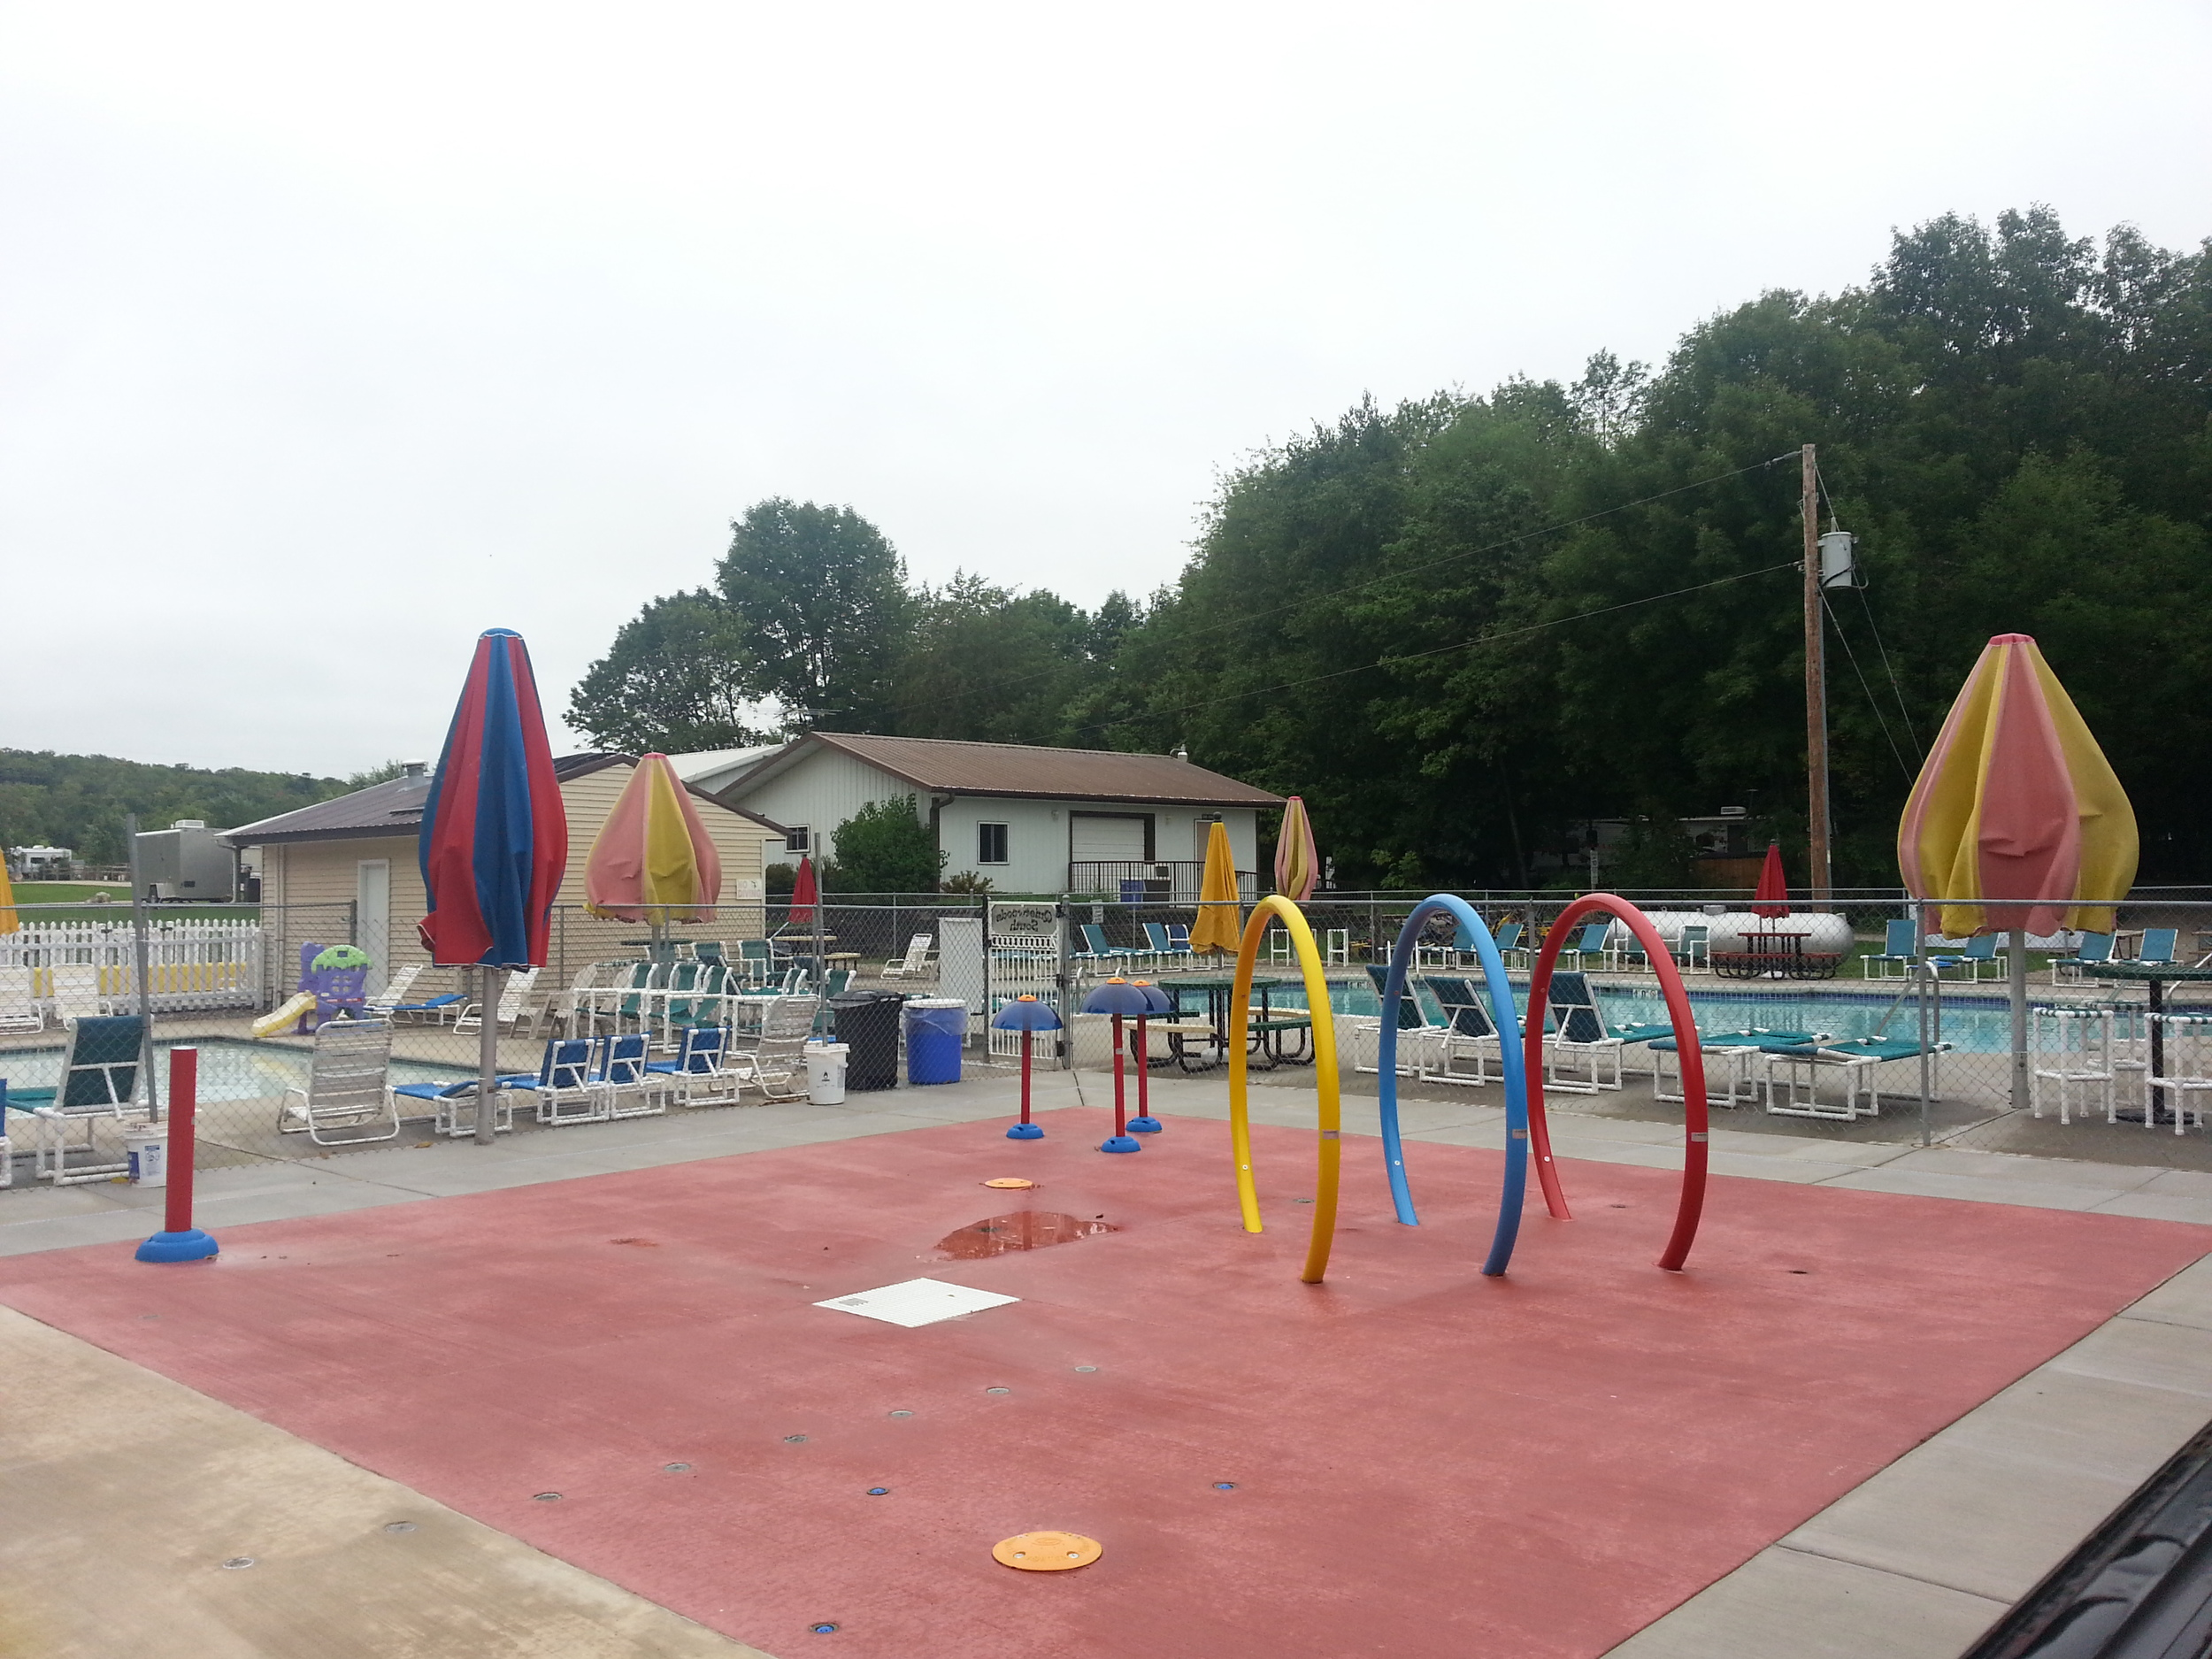 Outdoor plash pad and seating area at Quietwoods South Camping Resort in Brussels, WI